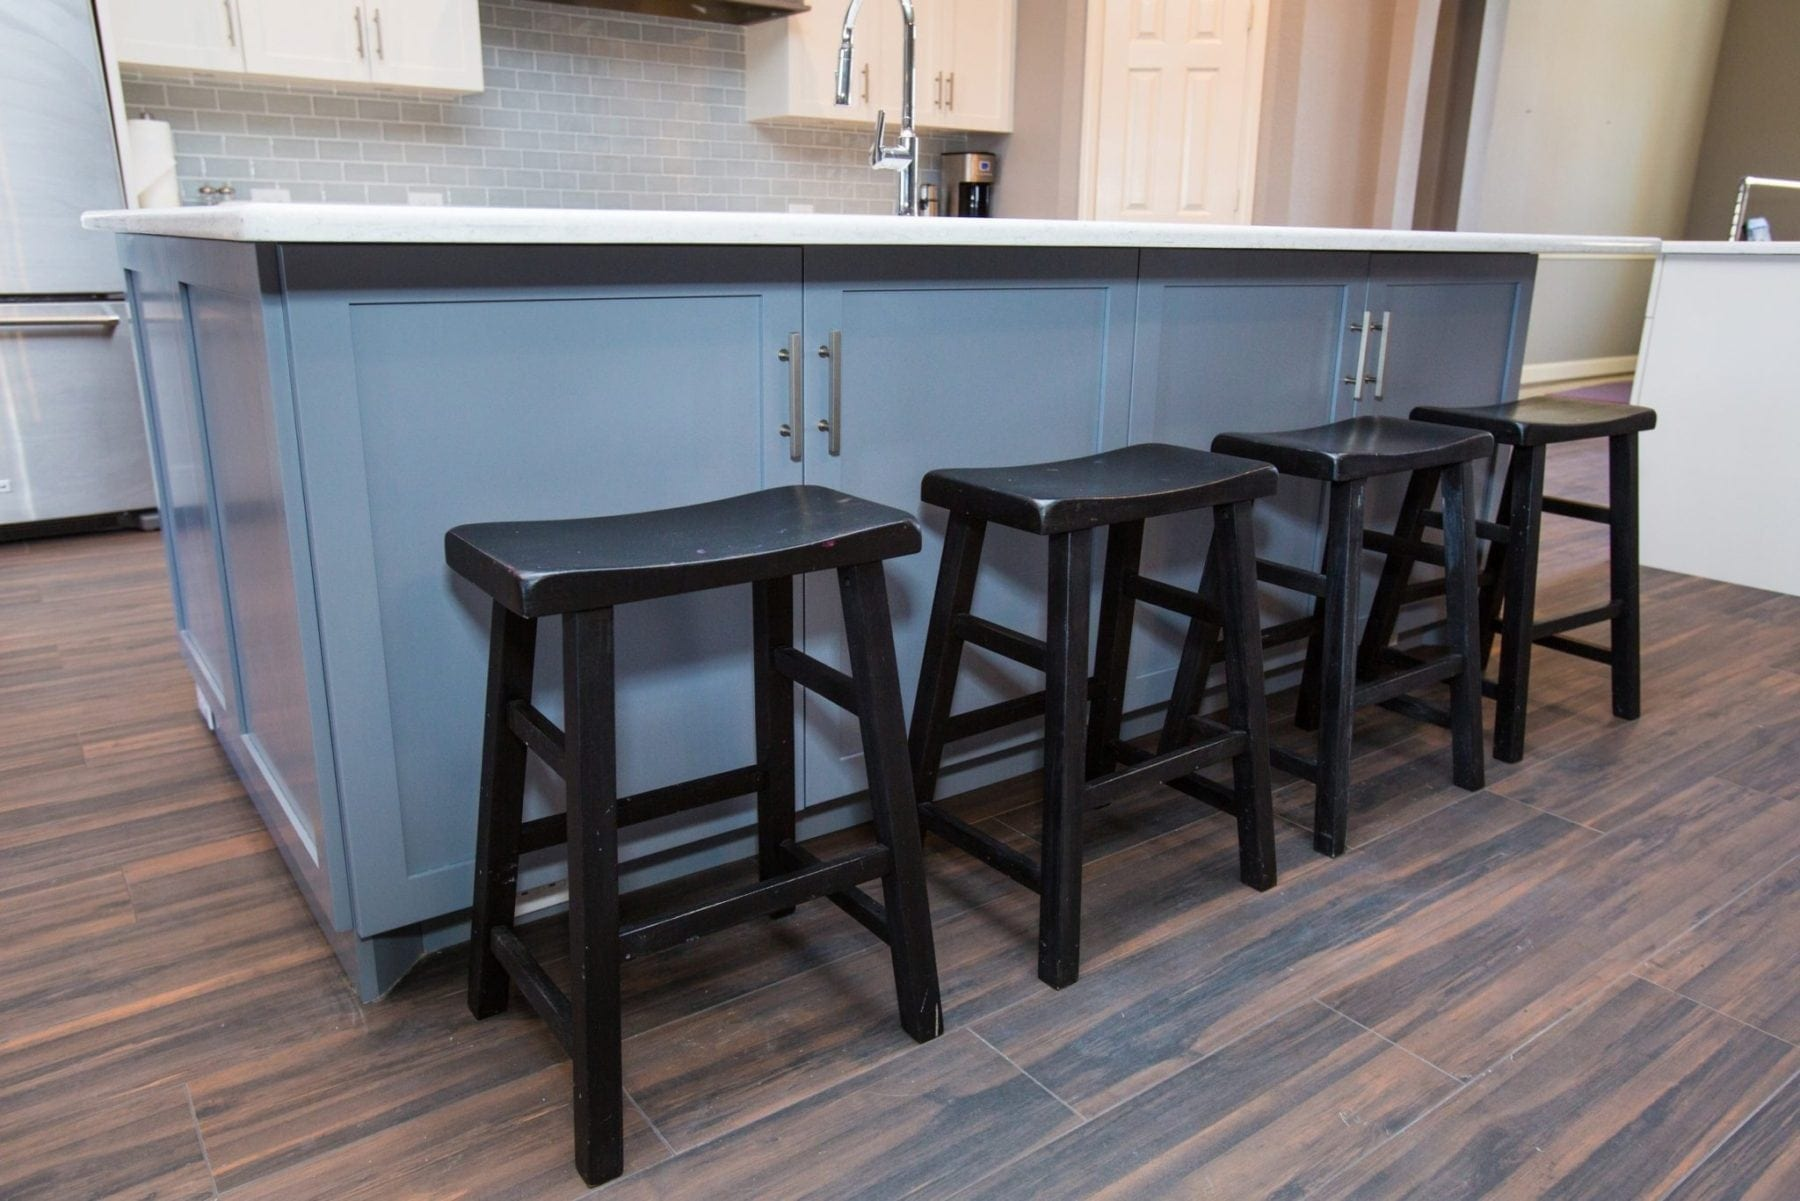 kitchen remodel dallas cabinets greenville sc after renowned mountain creek 75236 024